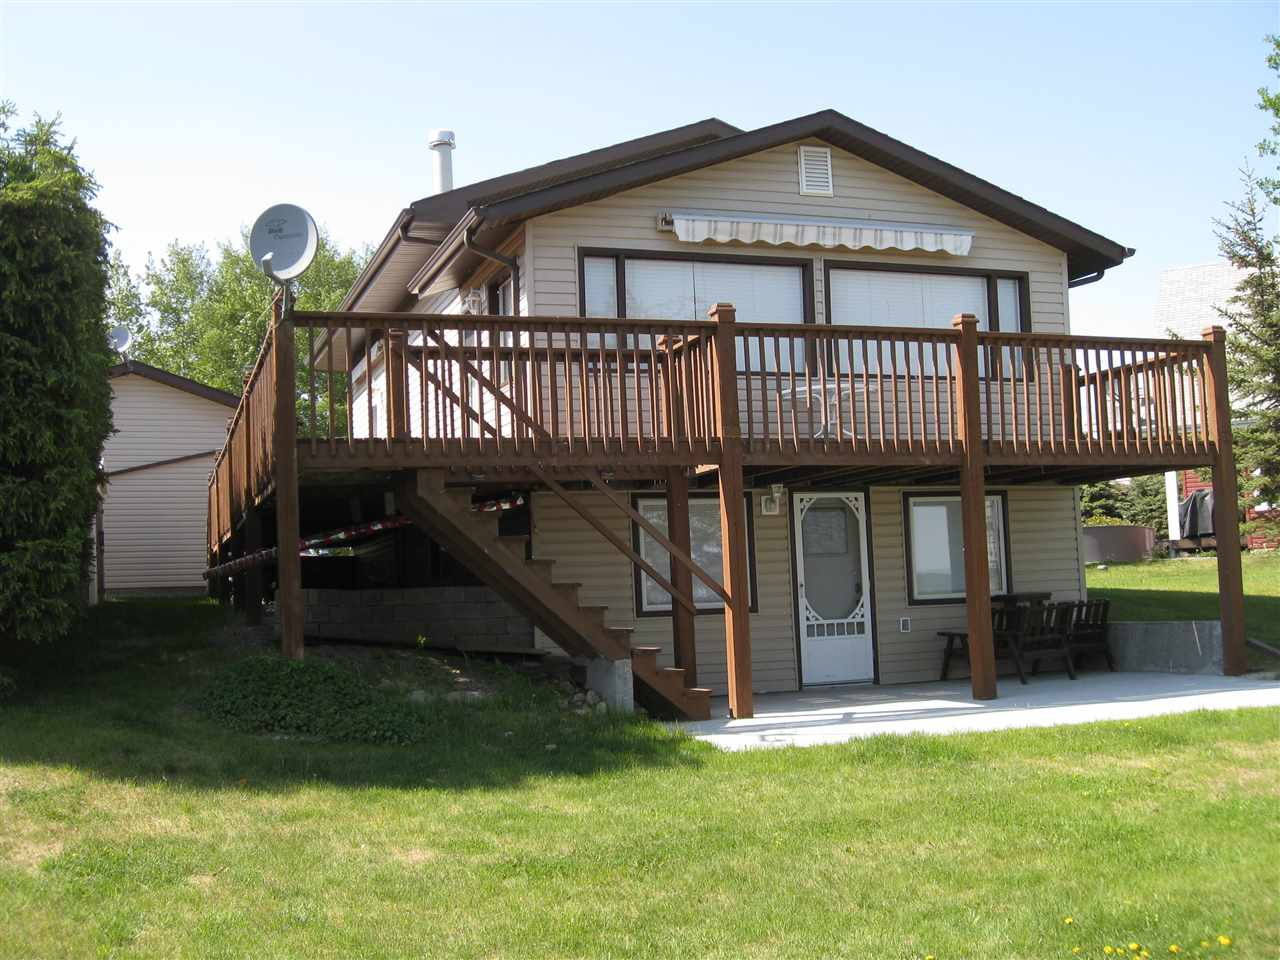 Main Photo: 213 53414 Rge Rd 62: Rural Lac Ste. Anne County House for sale : MLS®# E4106377